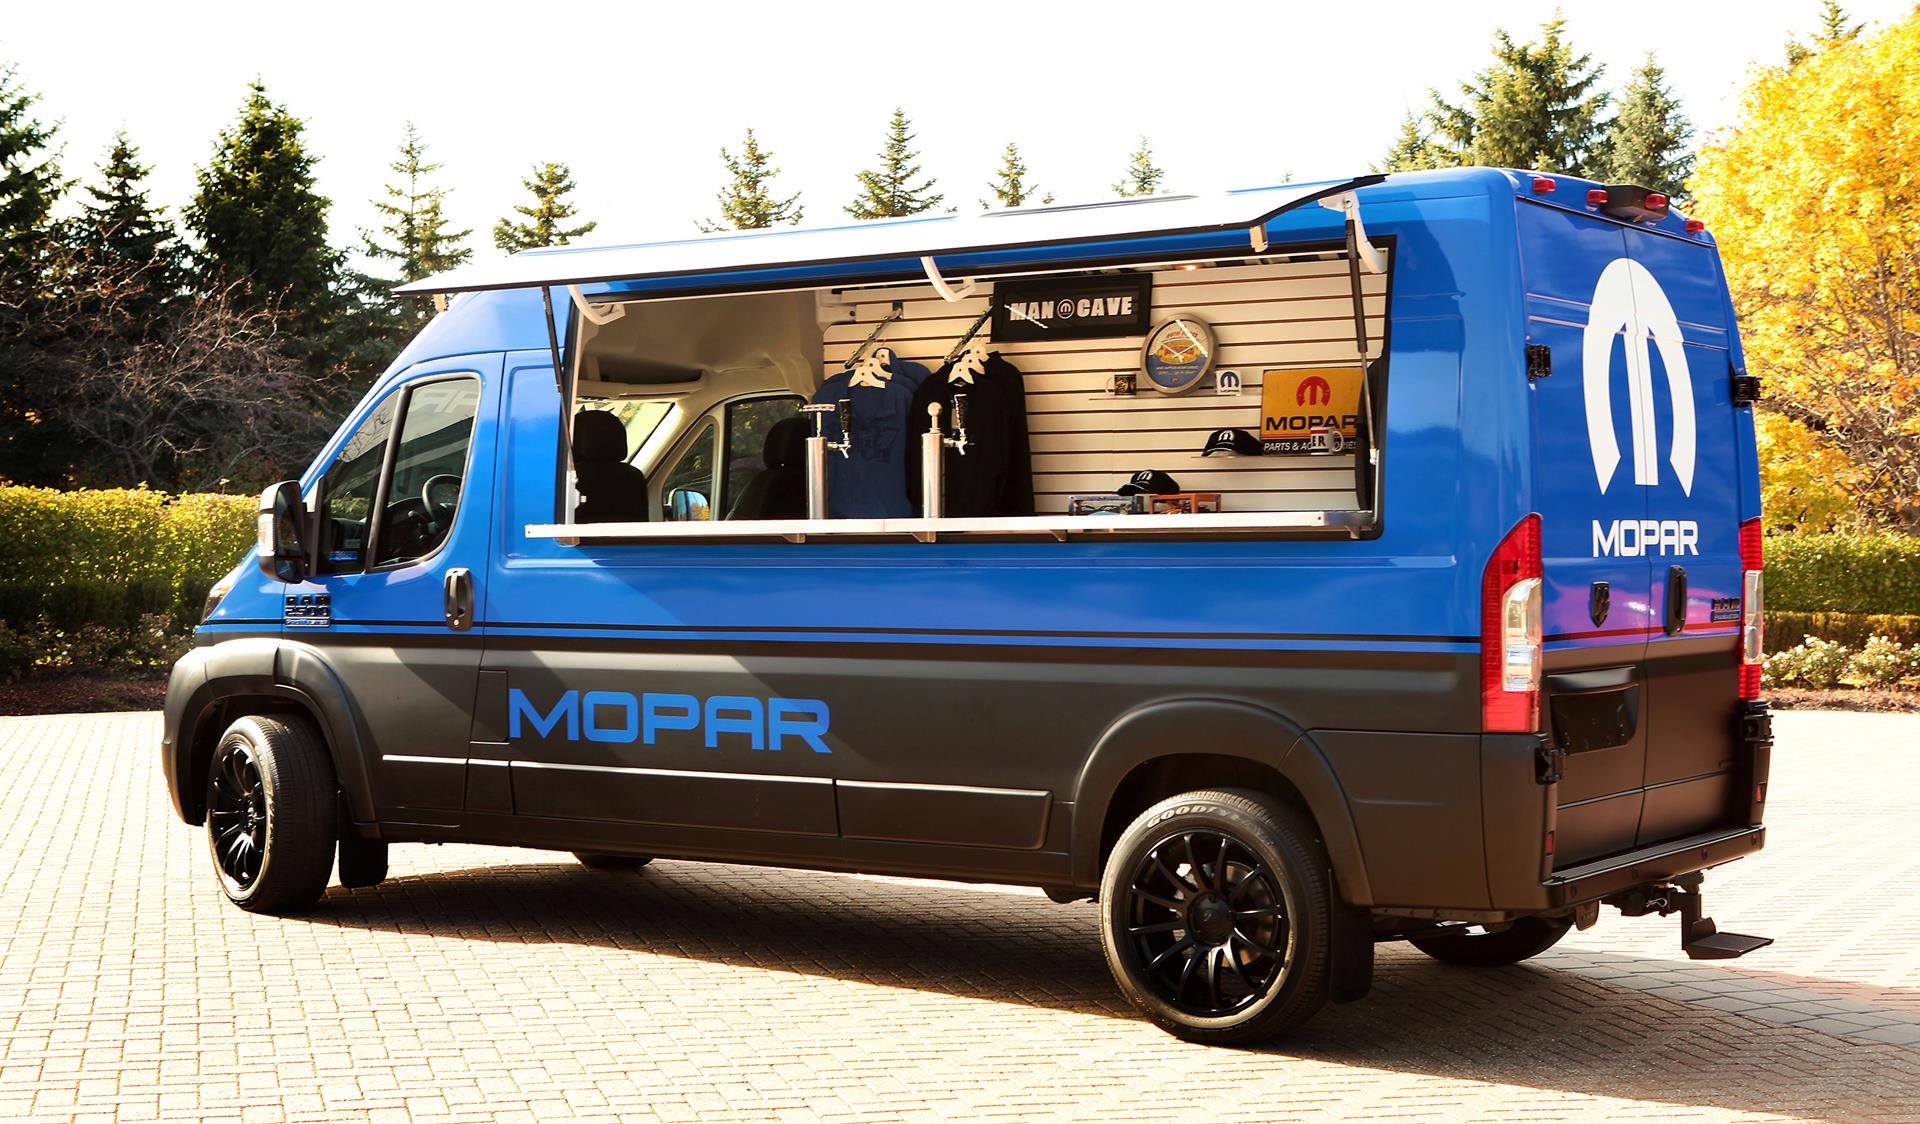 2014 Ram Promaster Hospitality Van News And Information